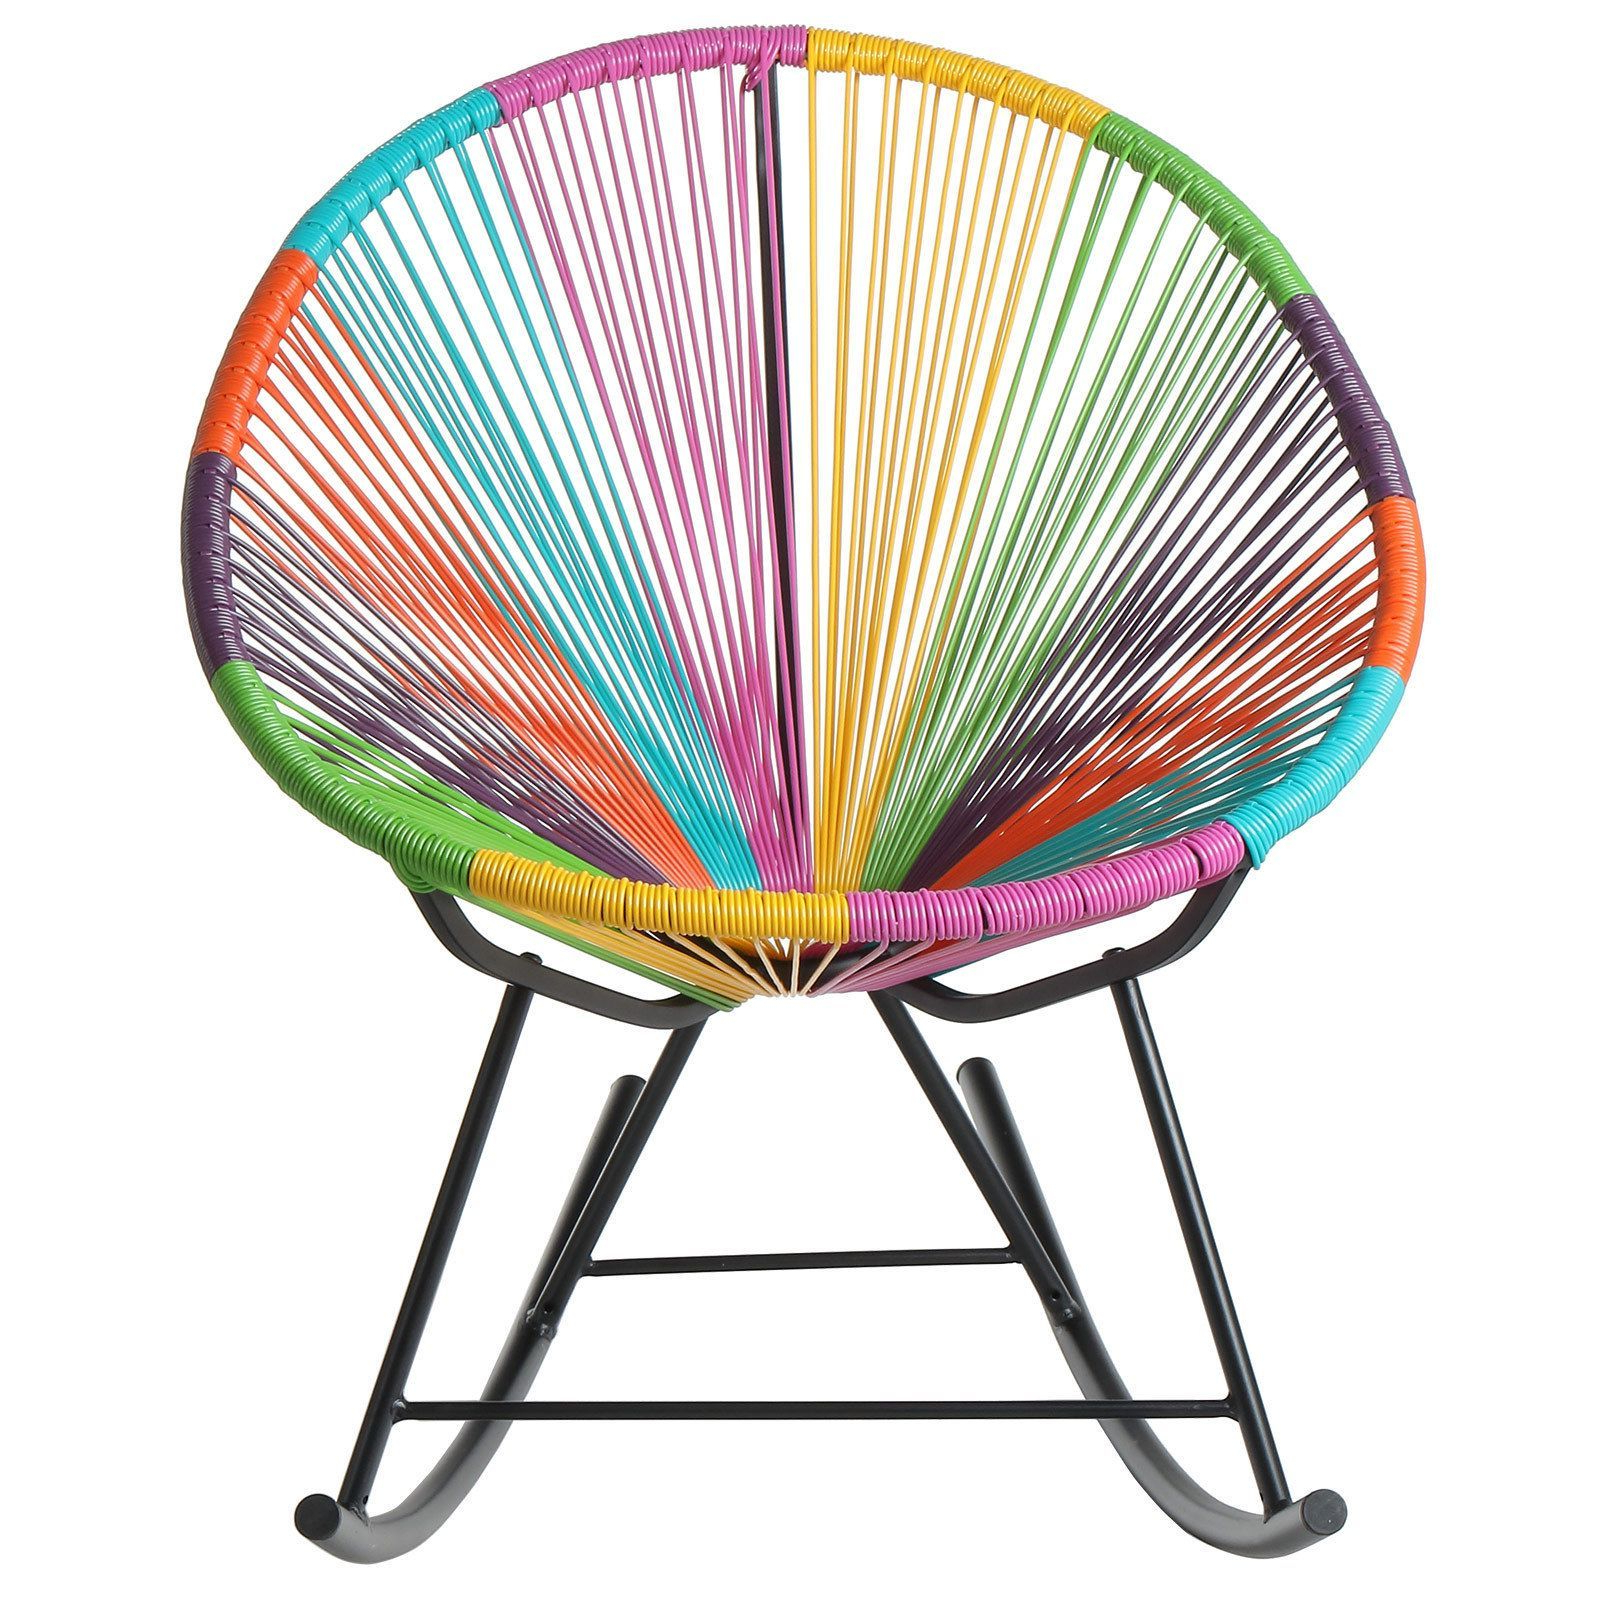 Handmade Acapulco Woven Indoor Outdoor Lounge Chairs For 2019 This Fun Multicolored Lounge Chair Offers Comfort And Style (View 10 of 25)